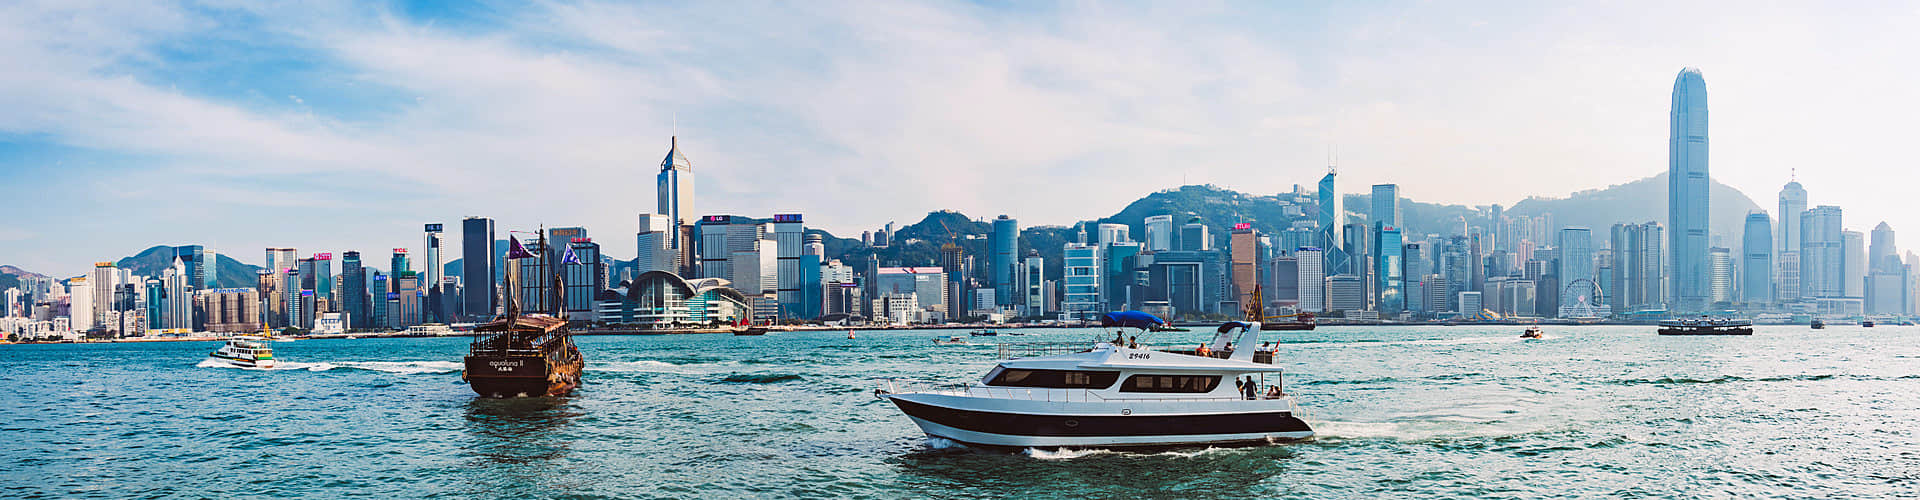 Two Day Trip in Hong Kong